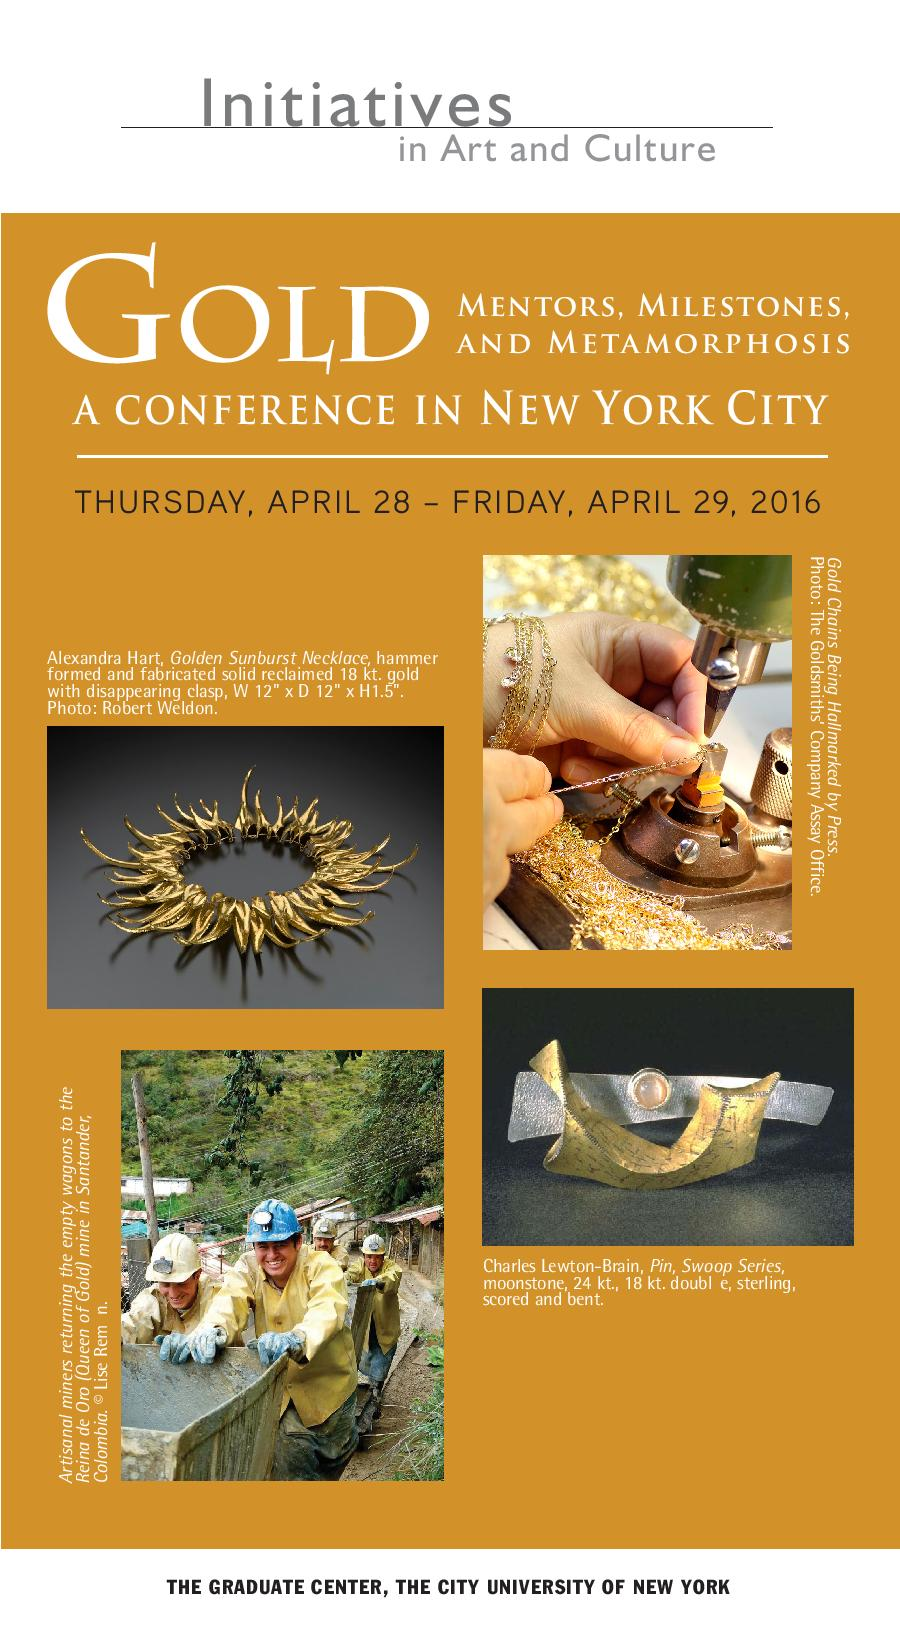 Golden Sunburst on Cover: IAC Conference